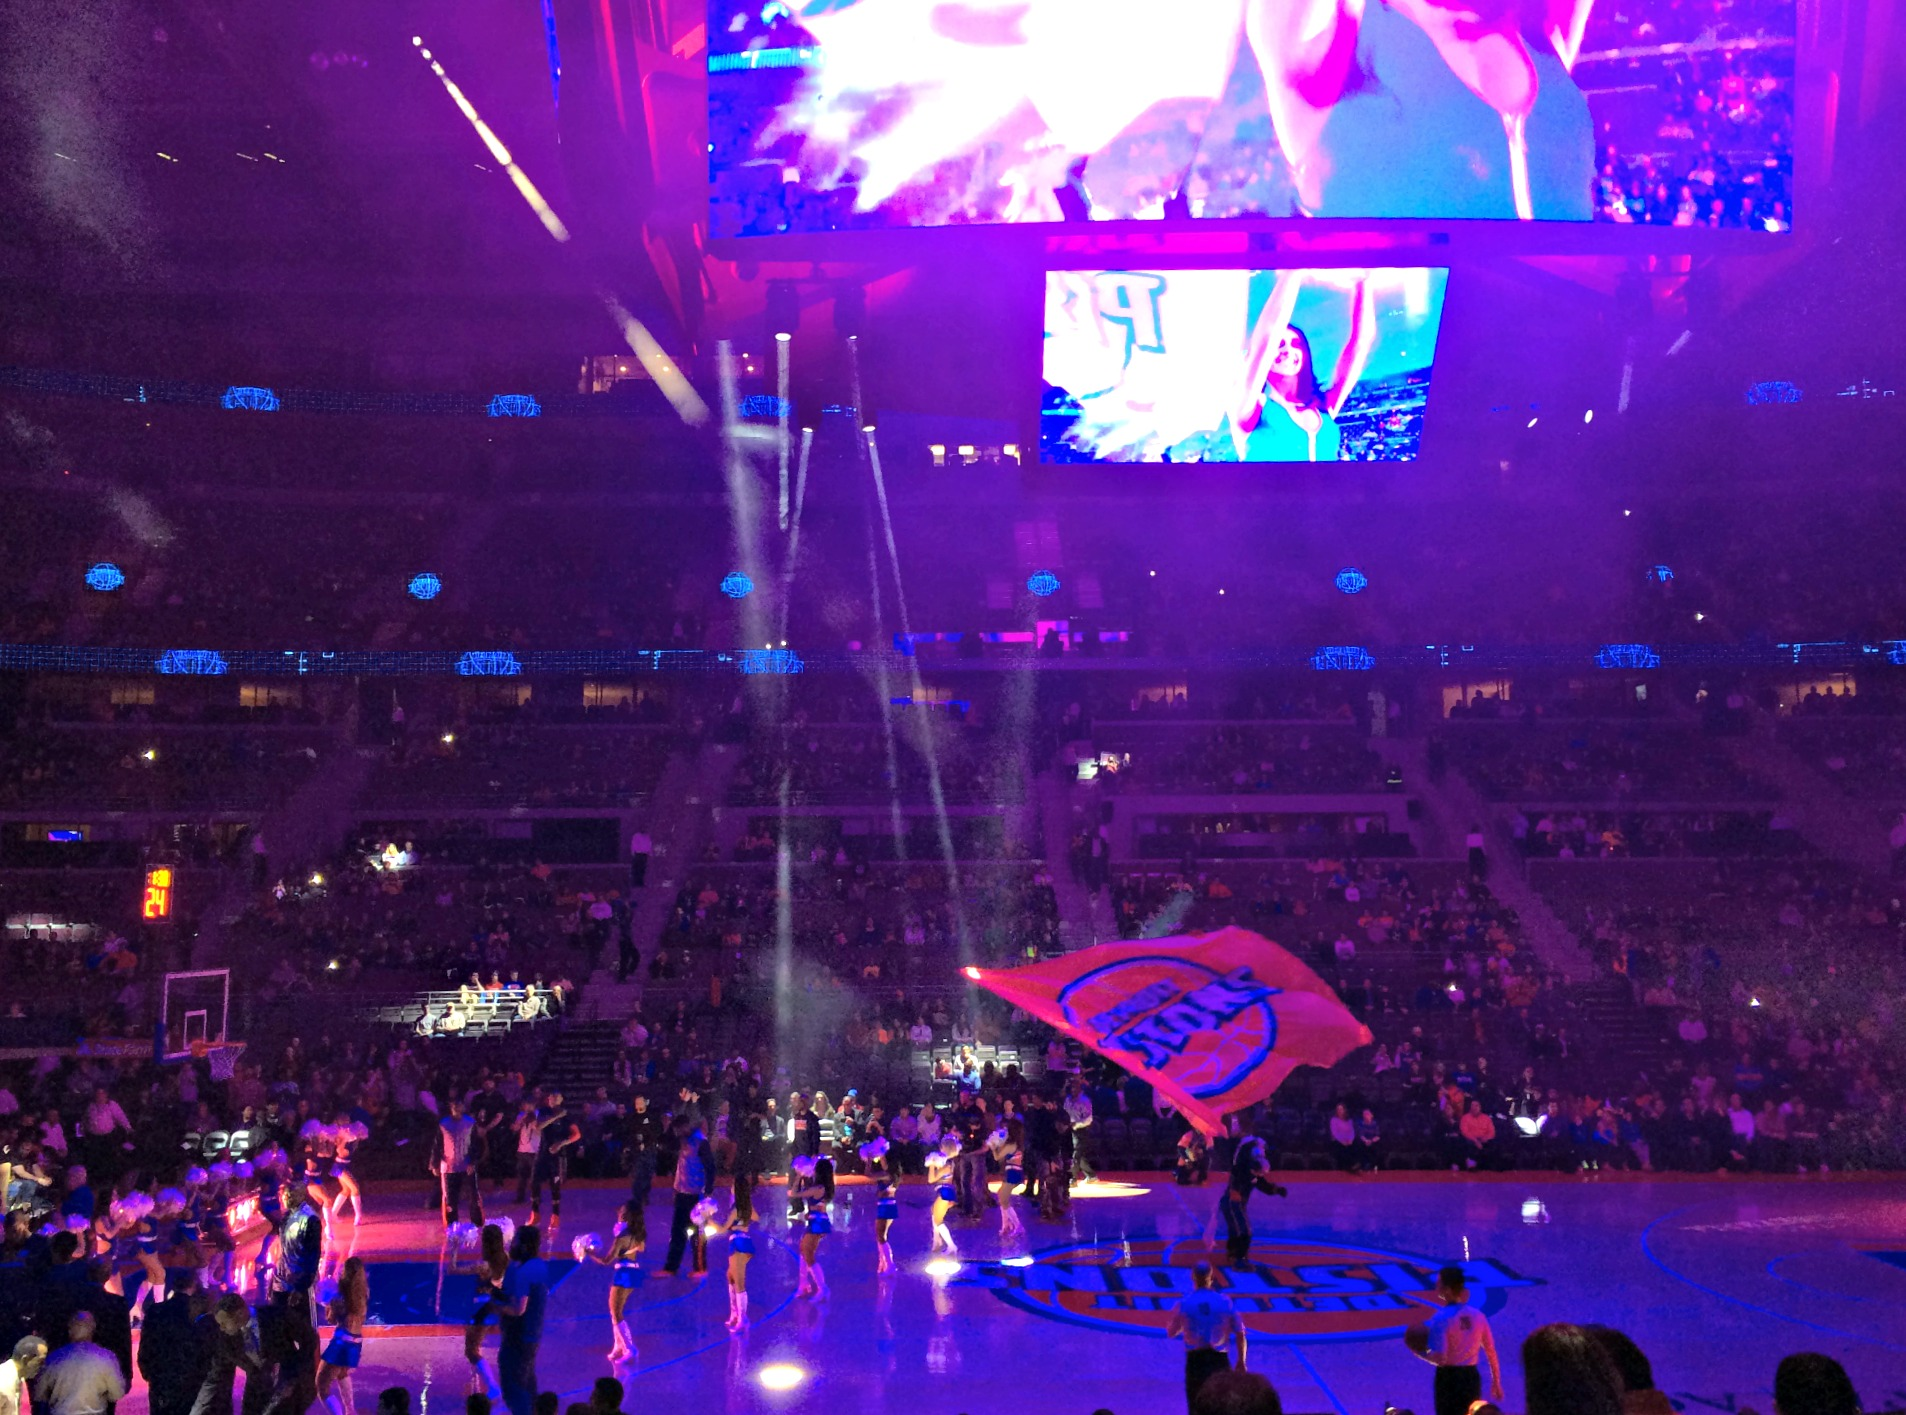 detroit pistons game intros